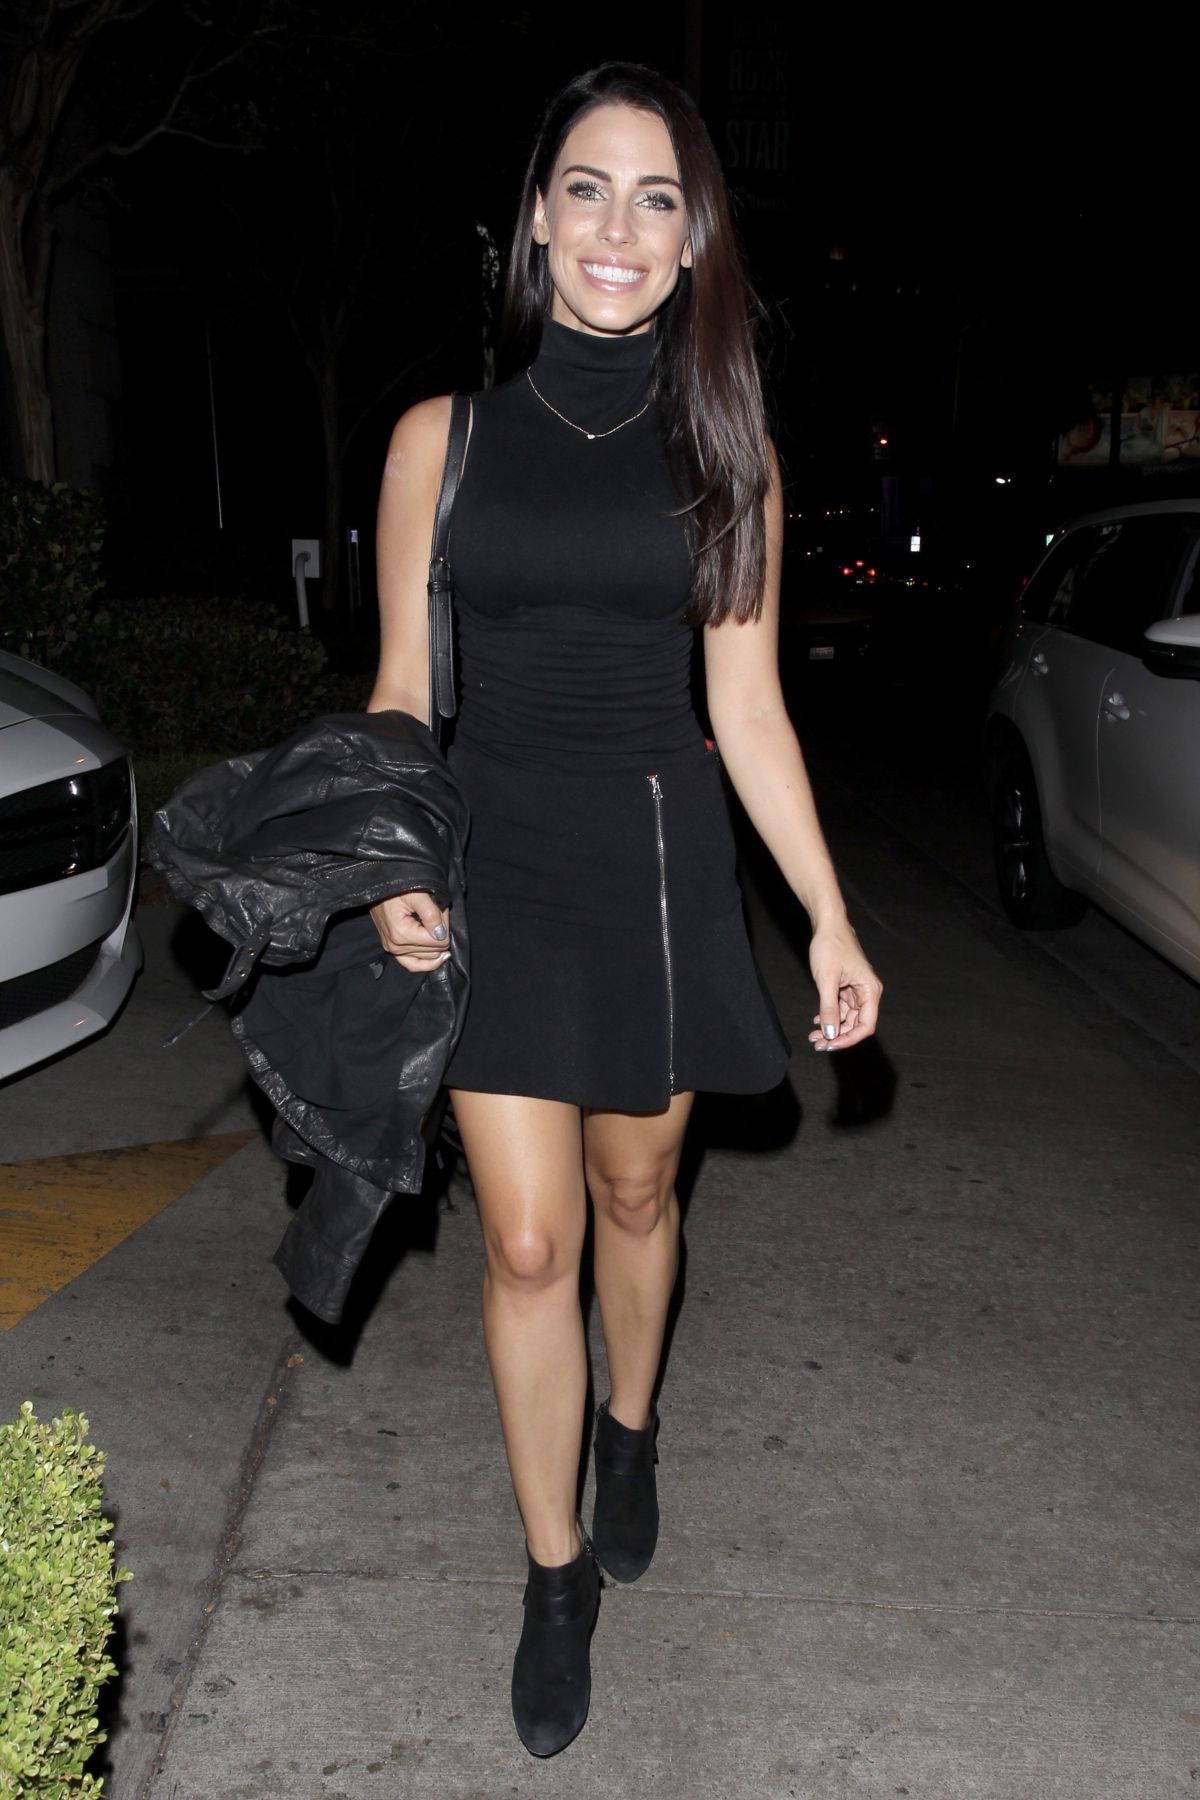 JESSICA LOWNDES Celebrates Her 28th Birthday at Katana Robata Sushi Bar in West Hollywood 11/08/2016